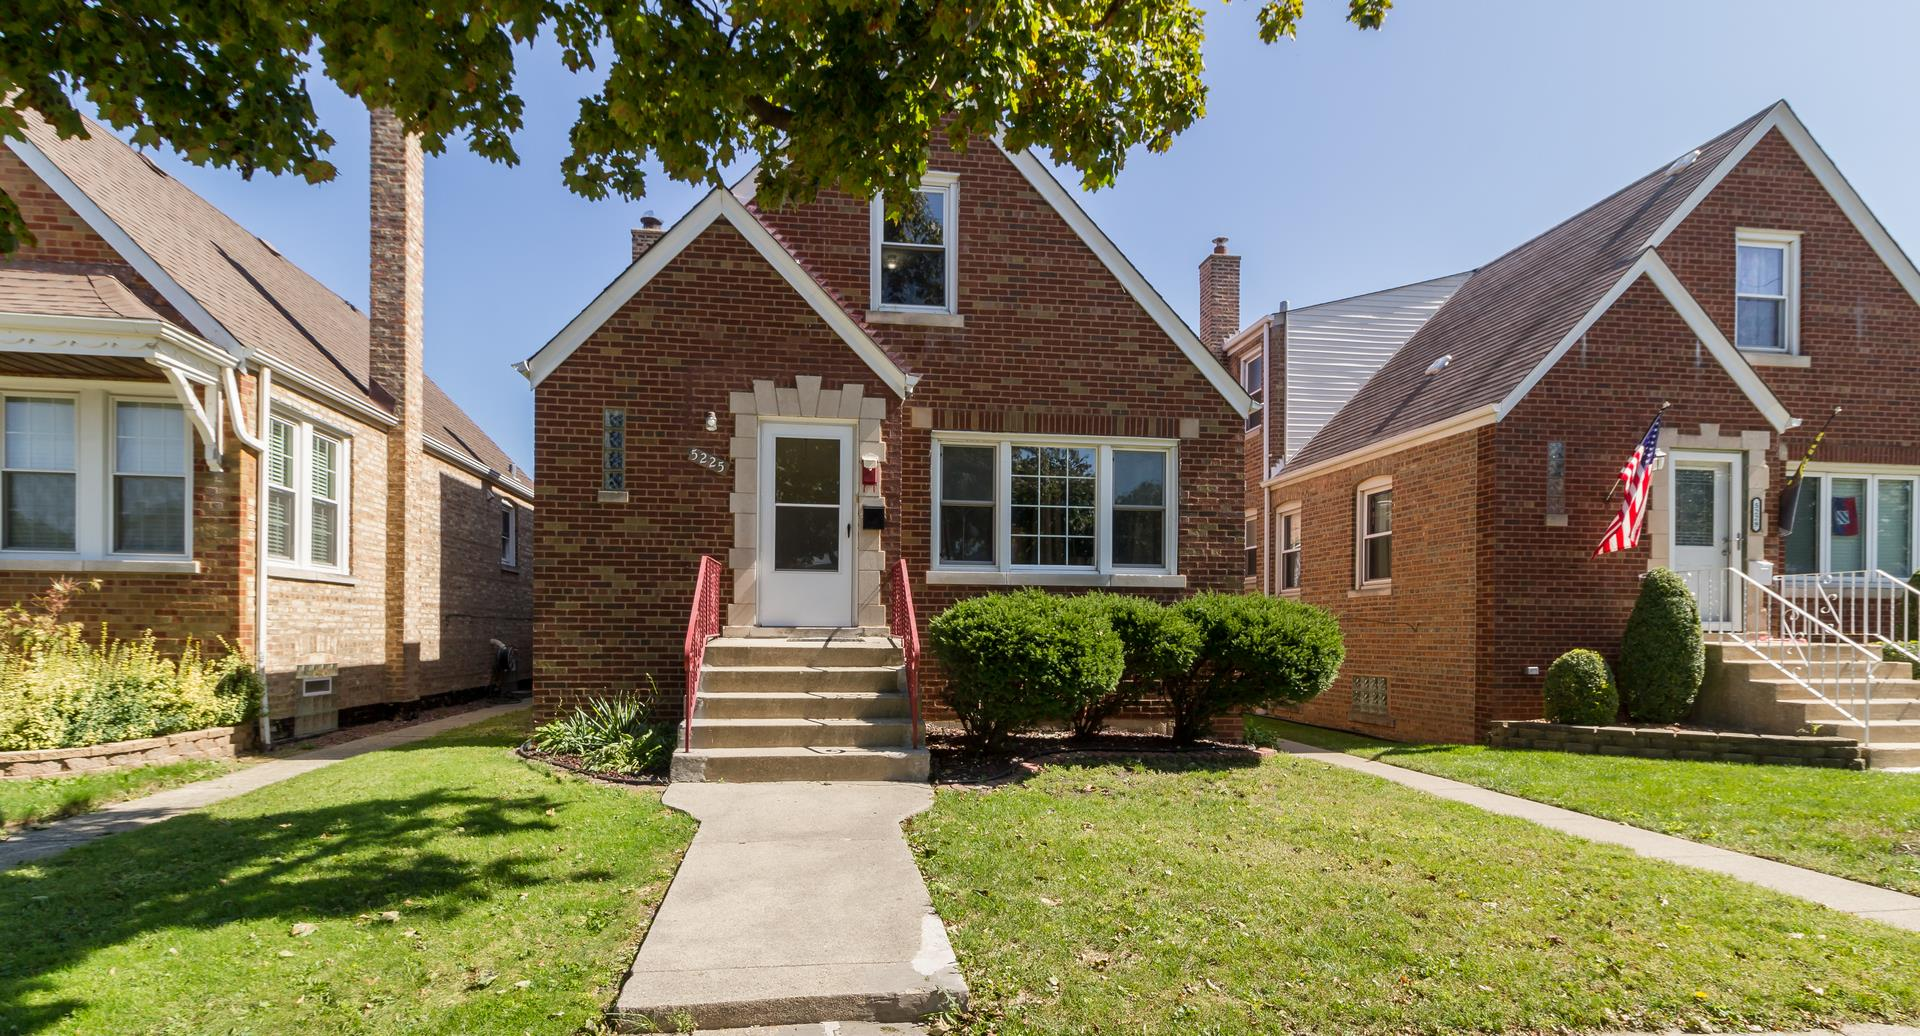 5225 S Narragansett Avenue, Chicago, IL 60638 - #: 10879997